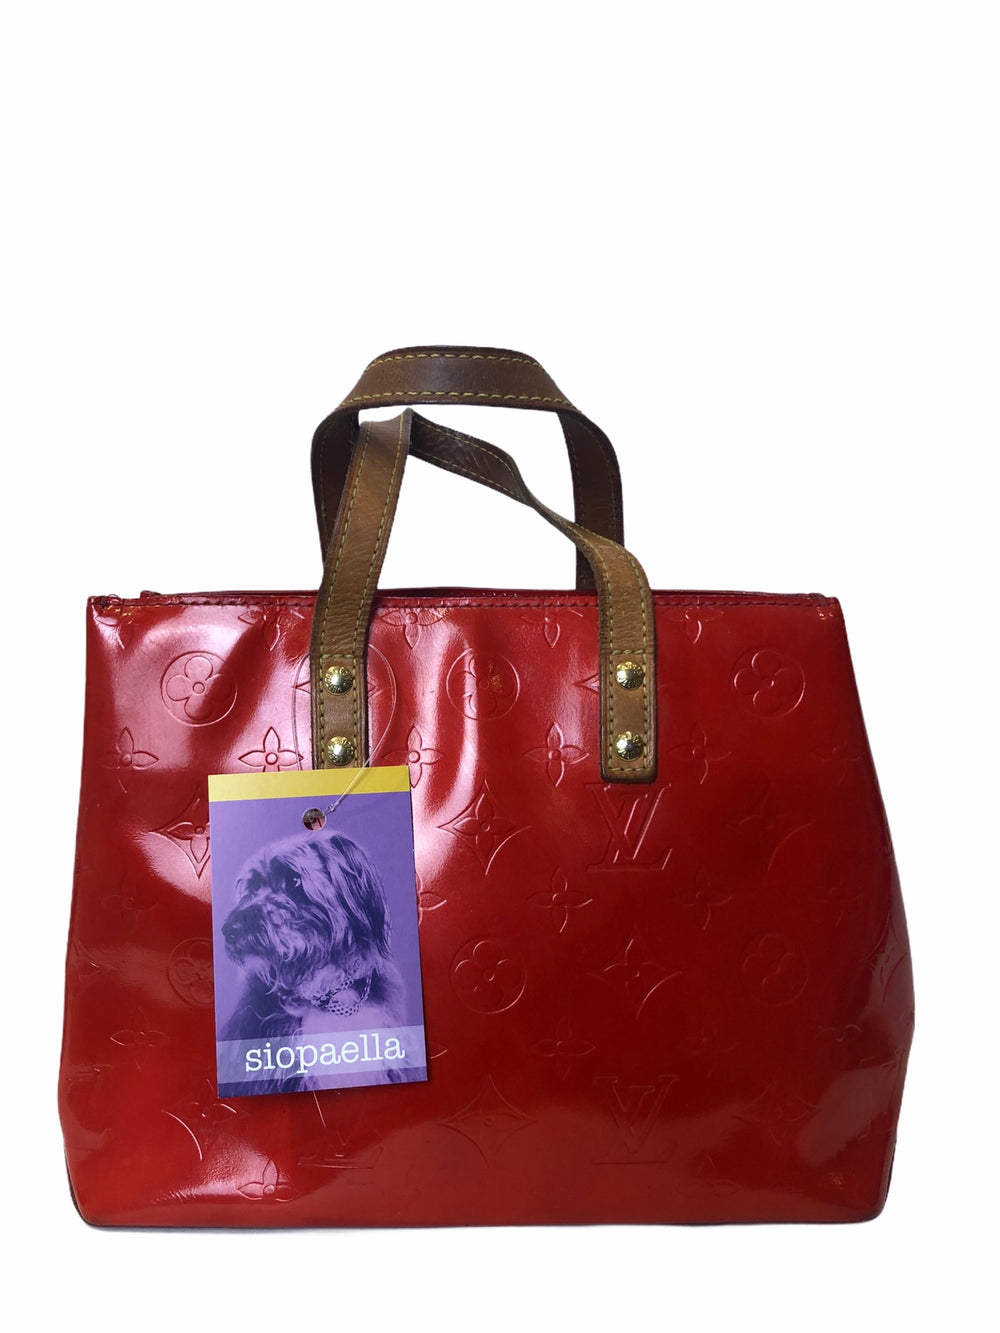 Louis Vuitton Patent Red Vernis Leather Tote